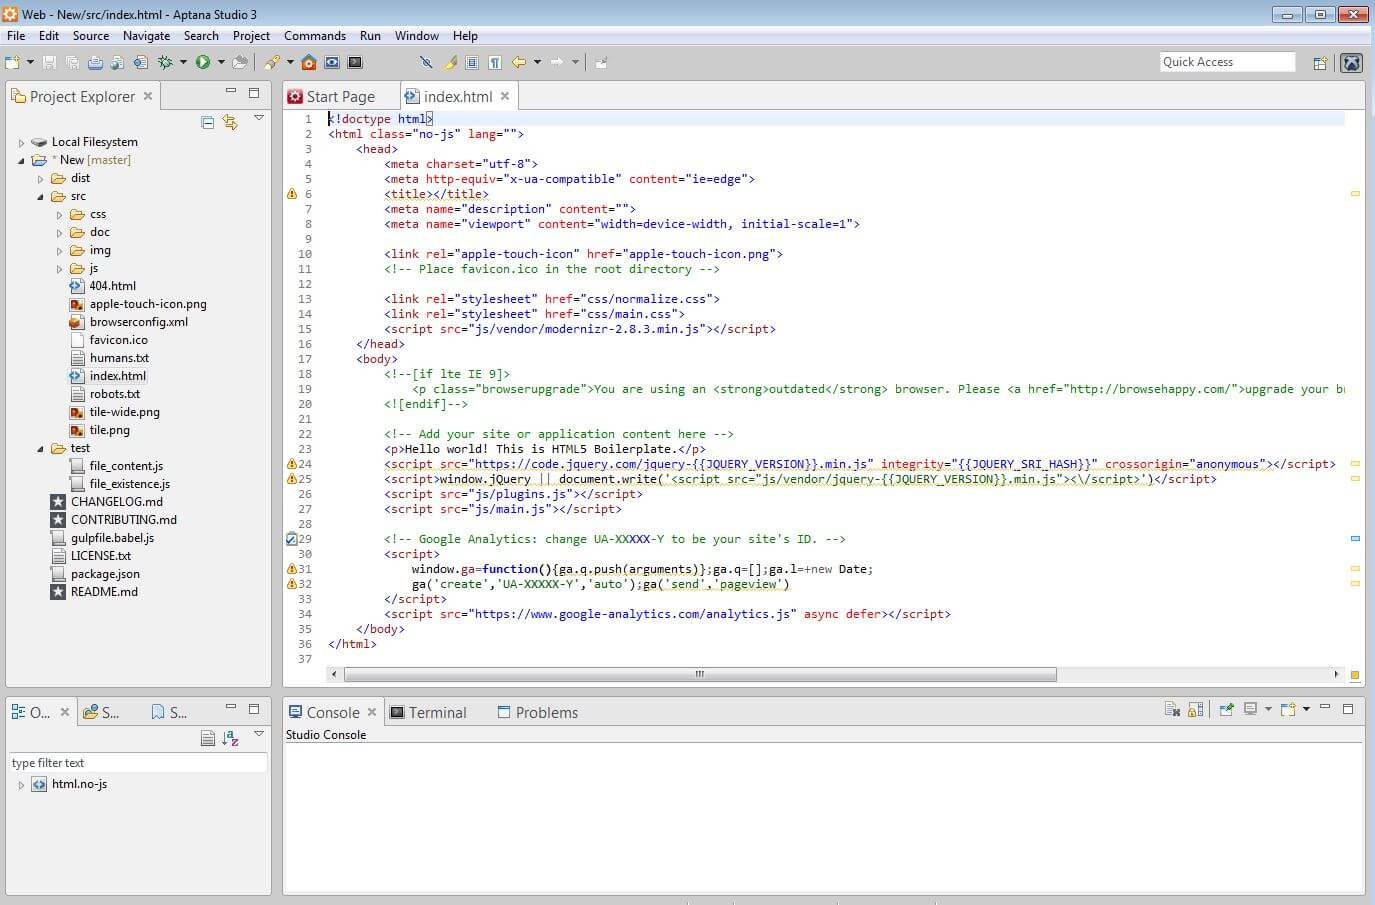 Alternativas a Dreamweaver: 5 soluciones open source - 1&1